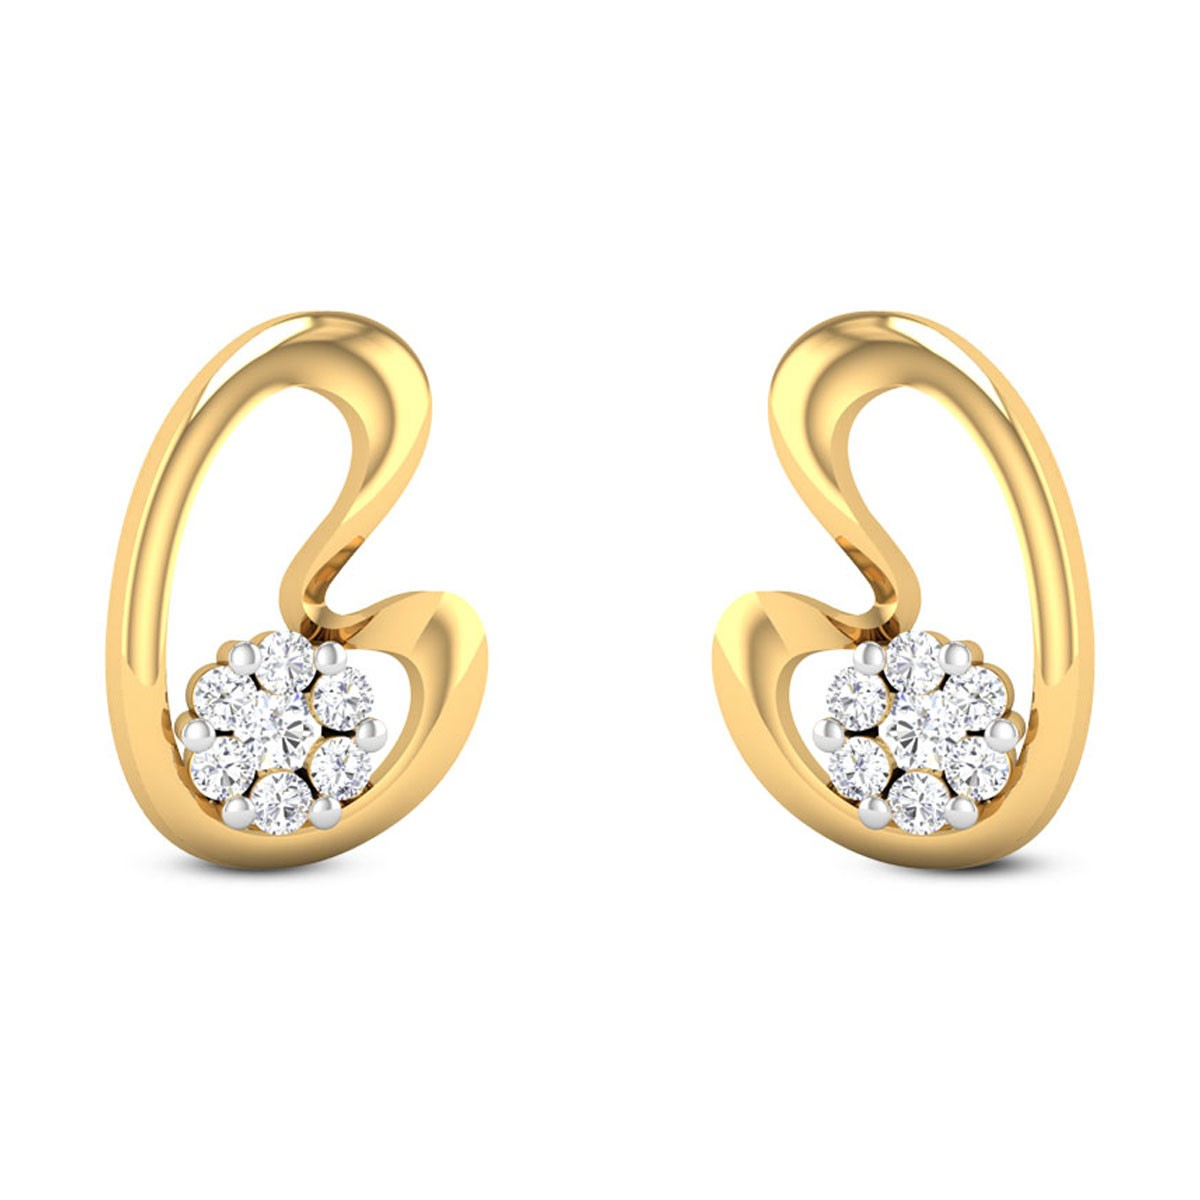 Hannah Diamond Earrings